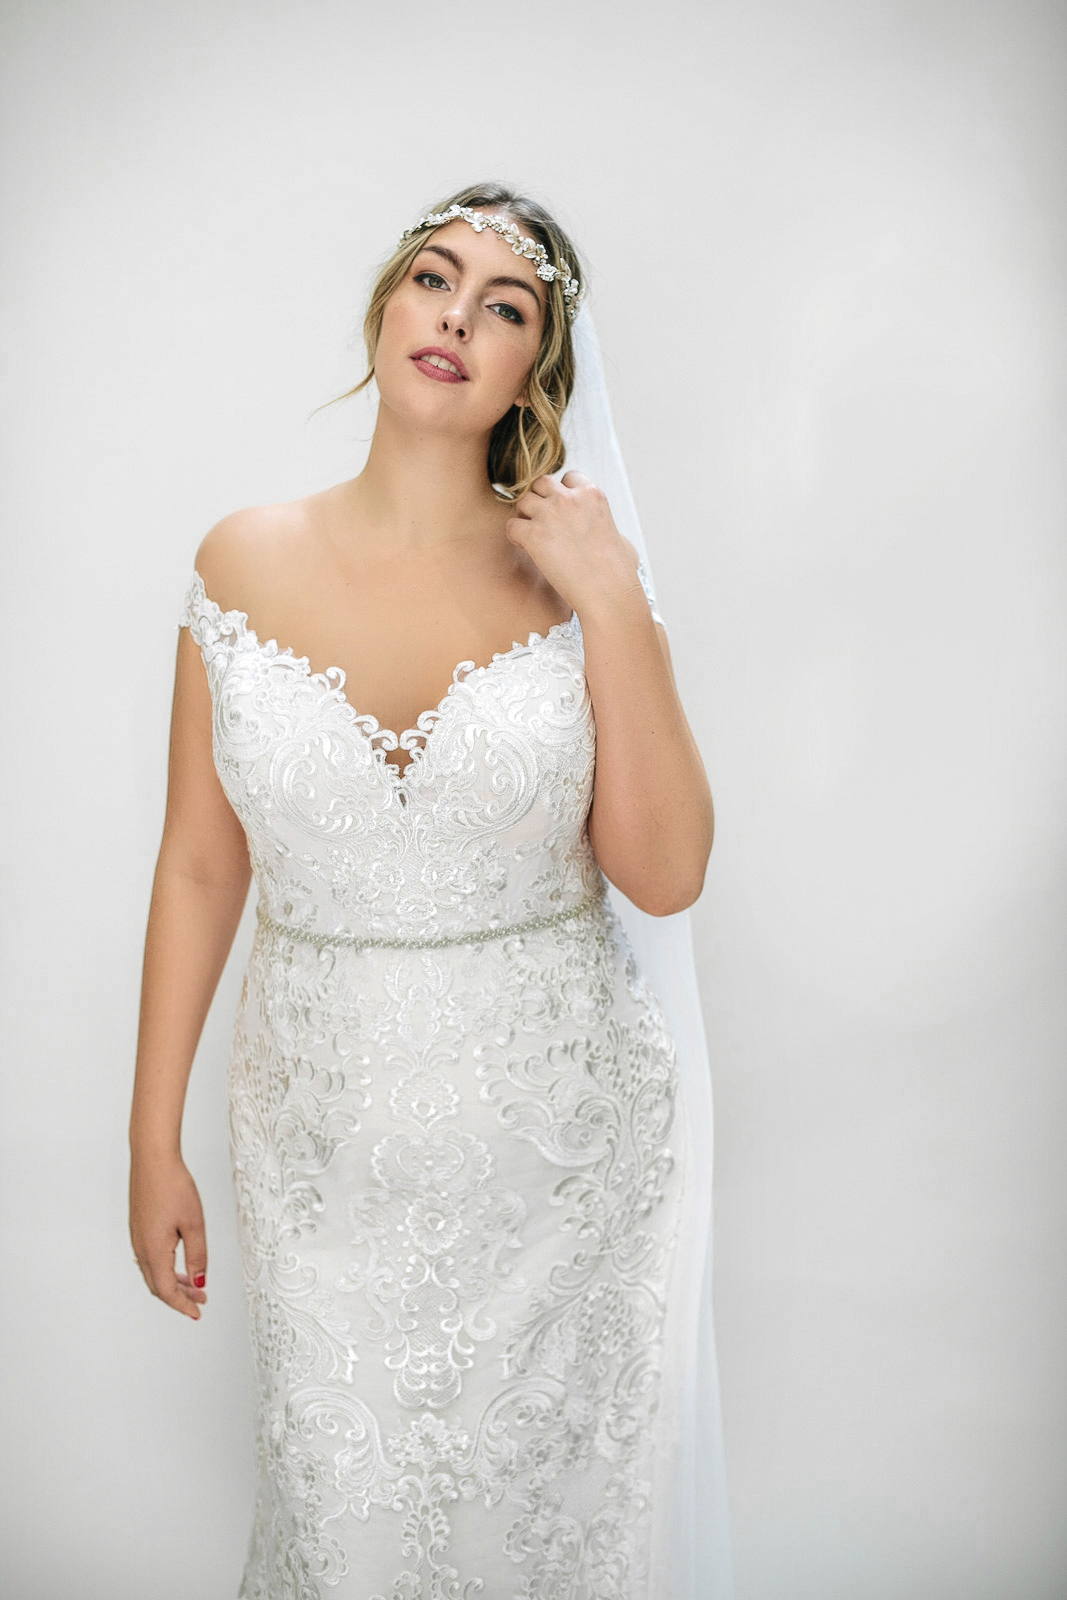 FASHION FRIDAY | New Collection Just for Indie Curvy Brides Arrives at Lovely Bride | Pretty Pear Bride